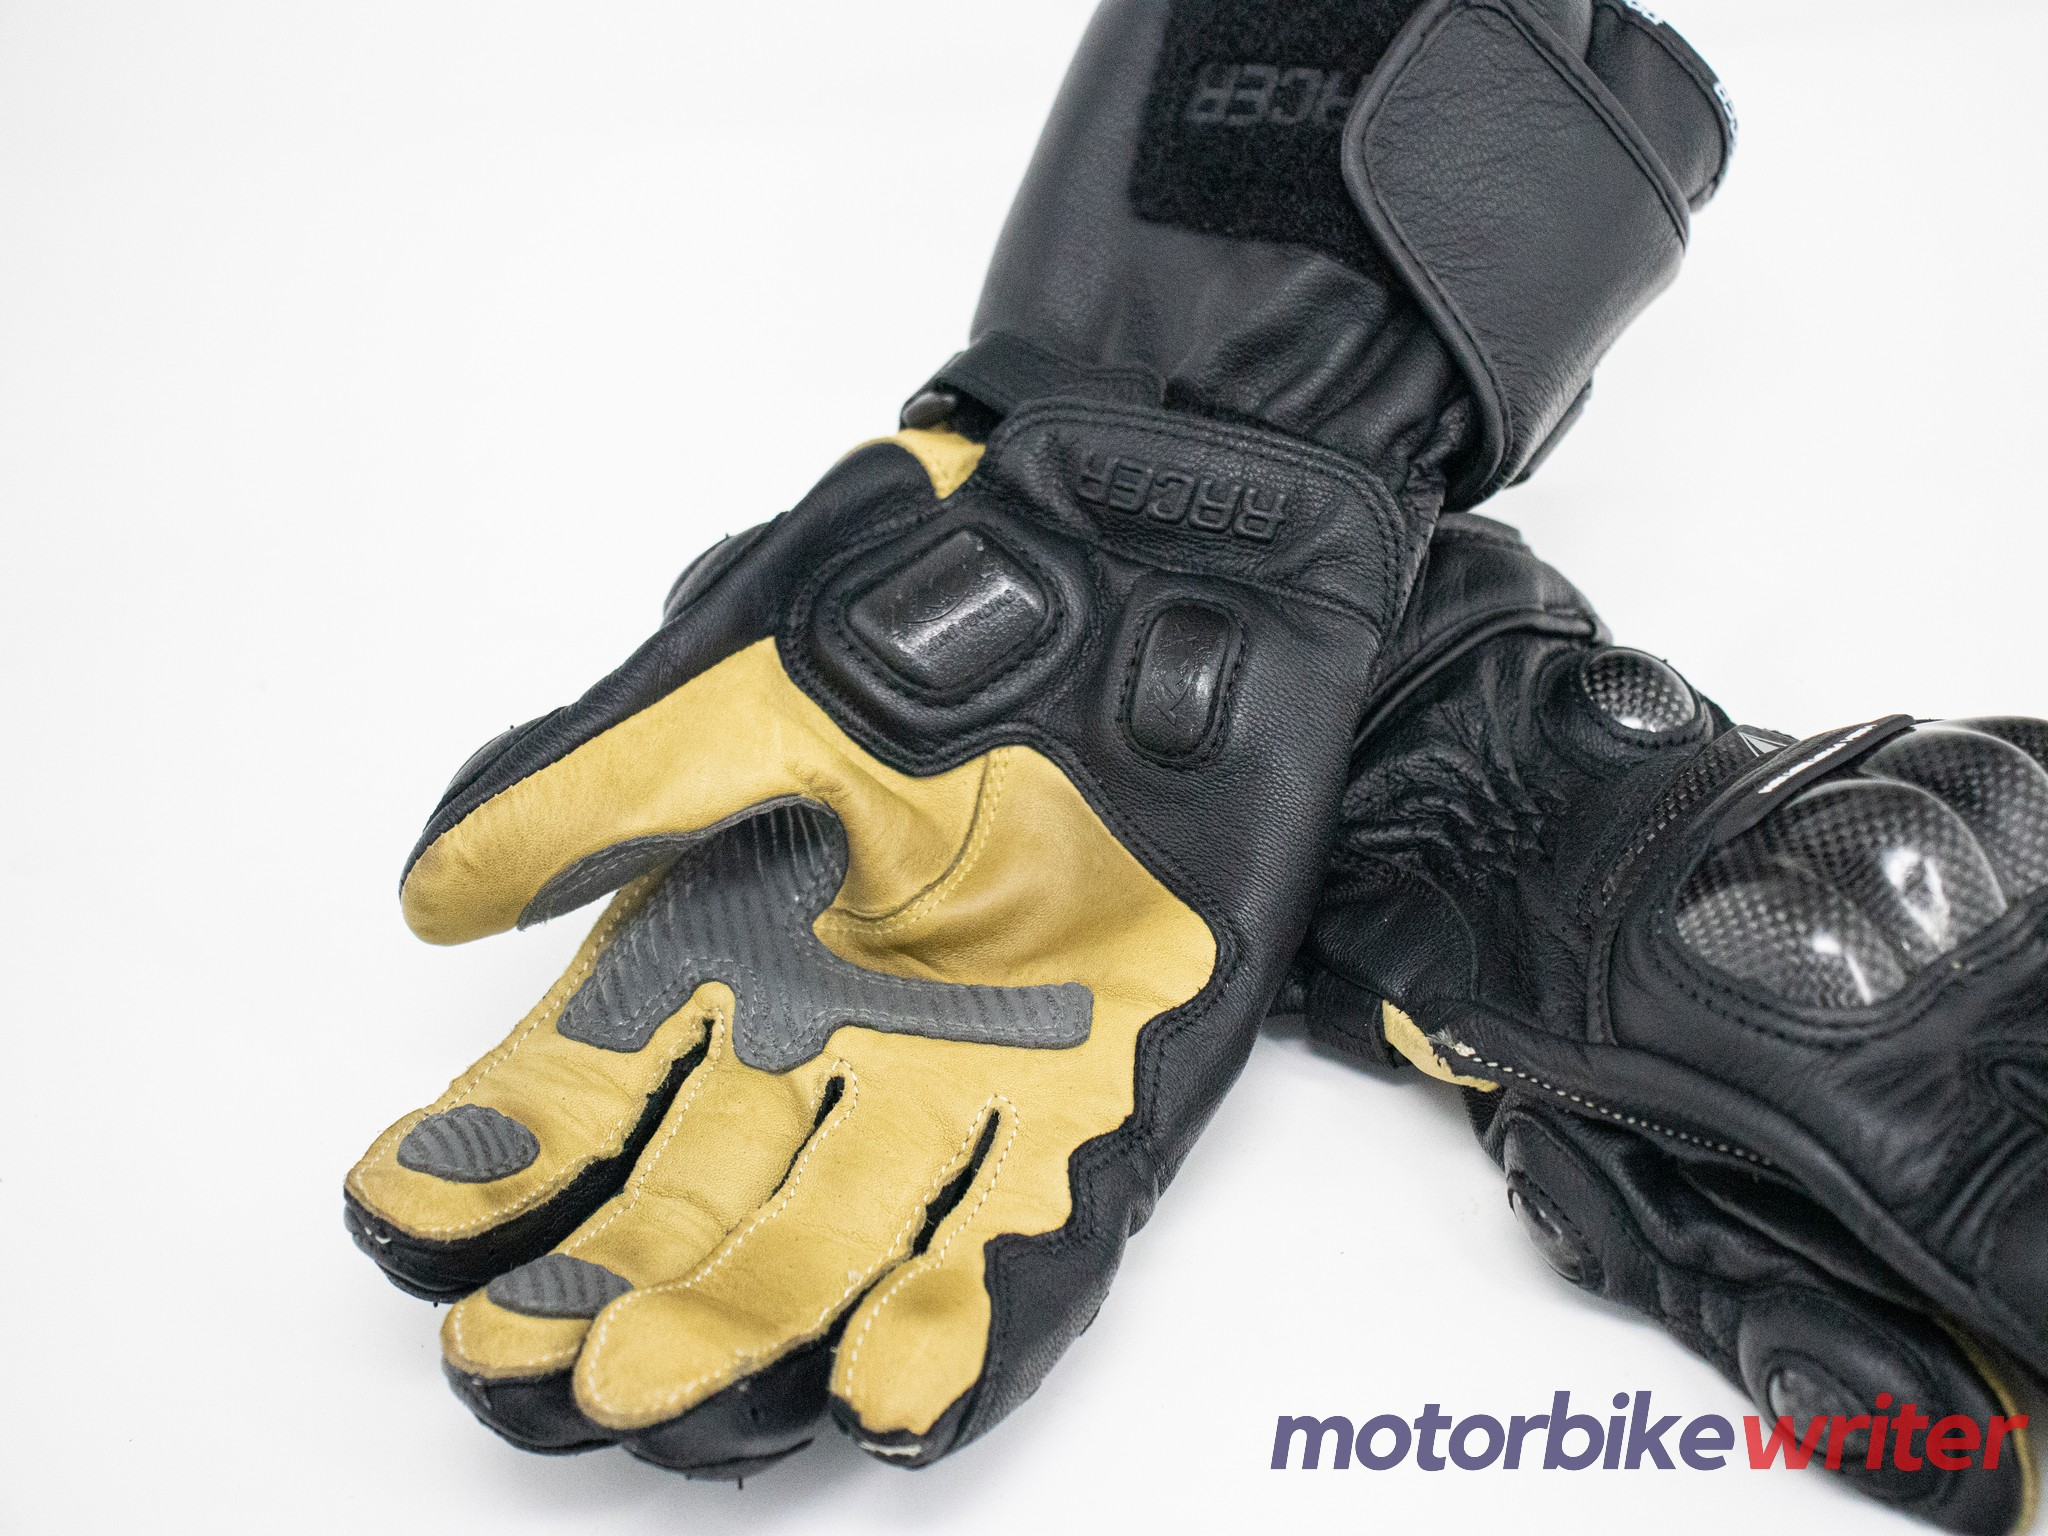 Both sides of the High Racer glove